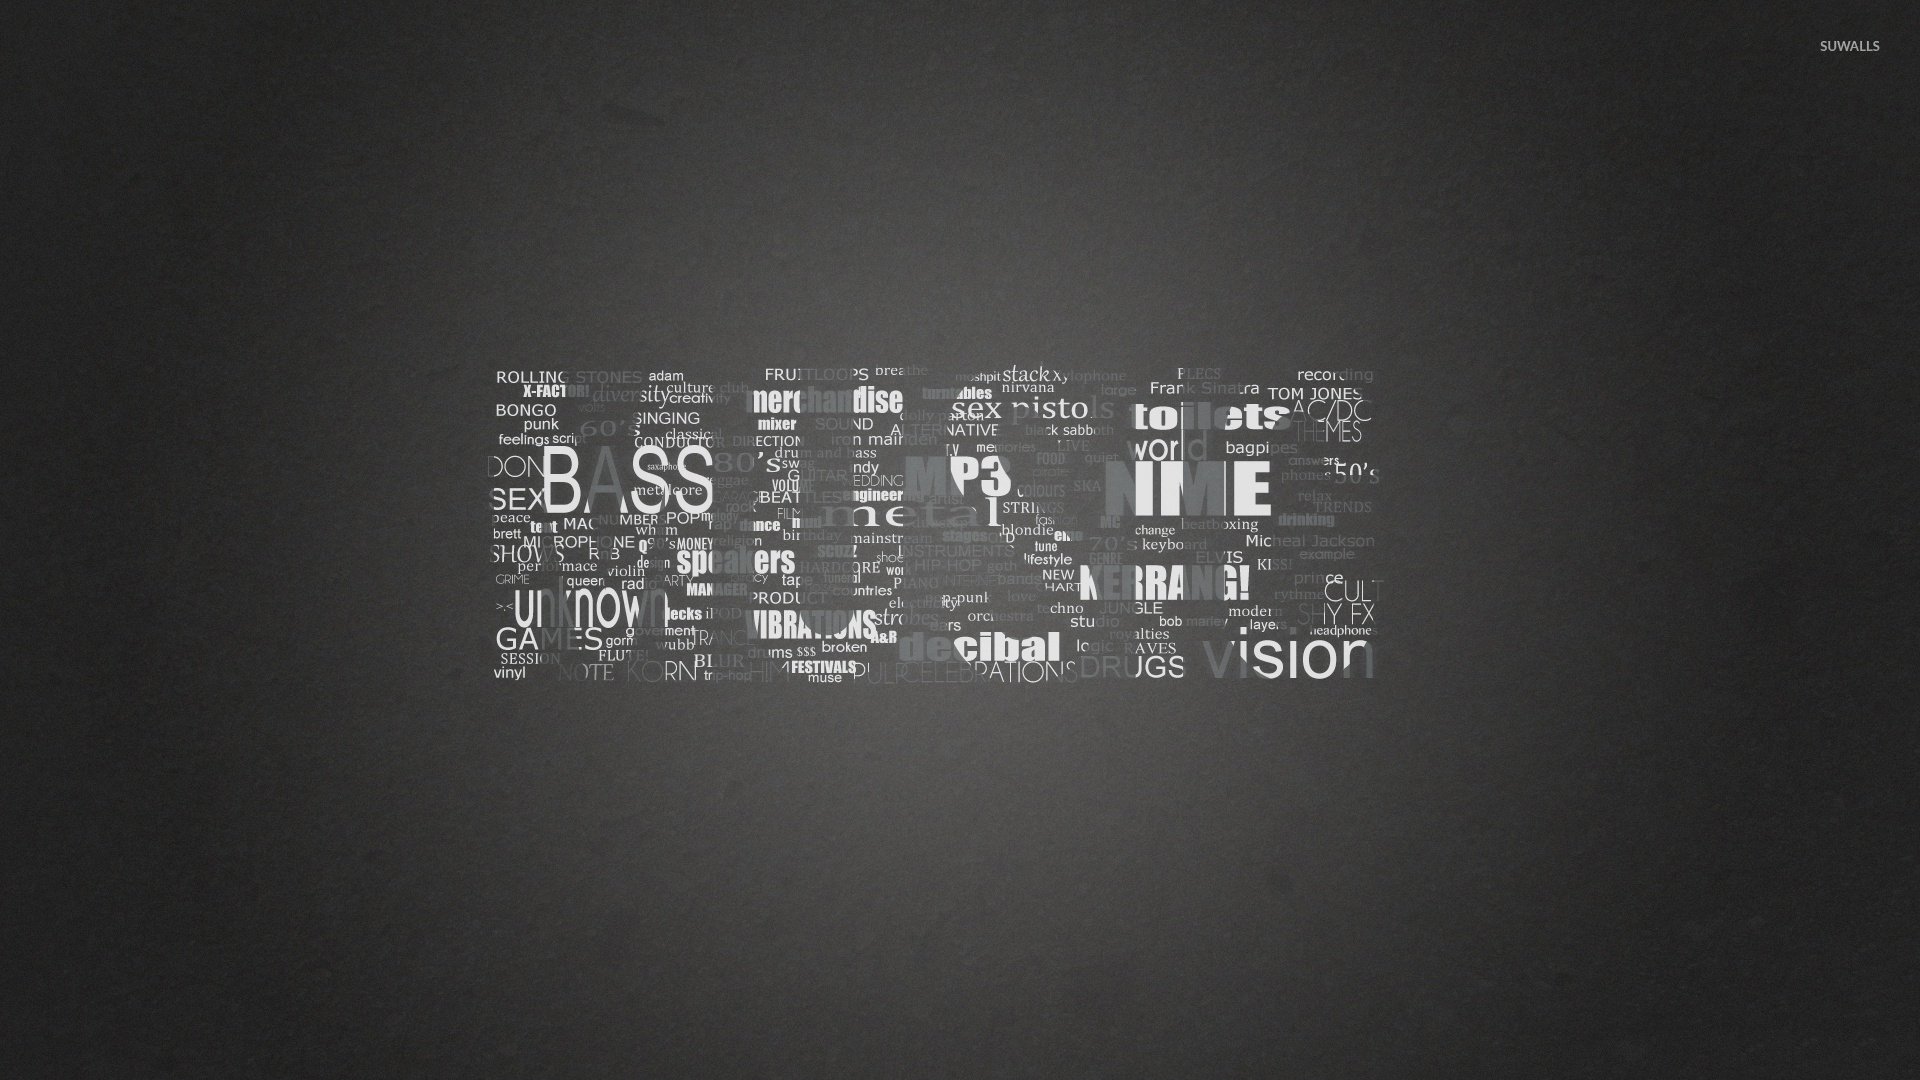 Black and white music genres wallpaper